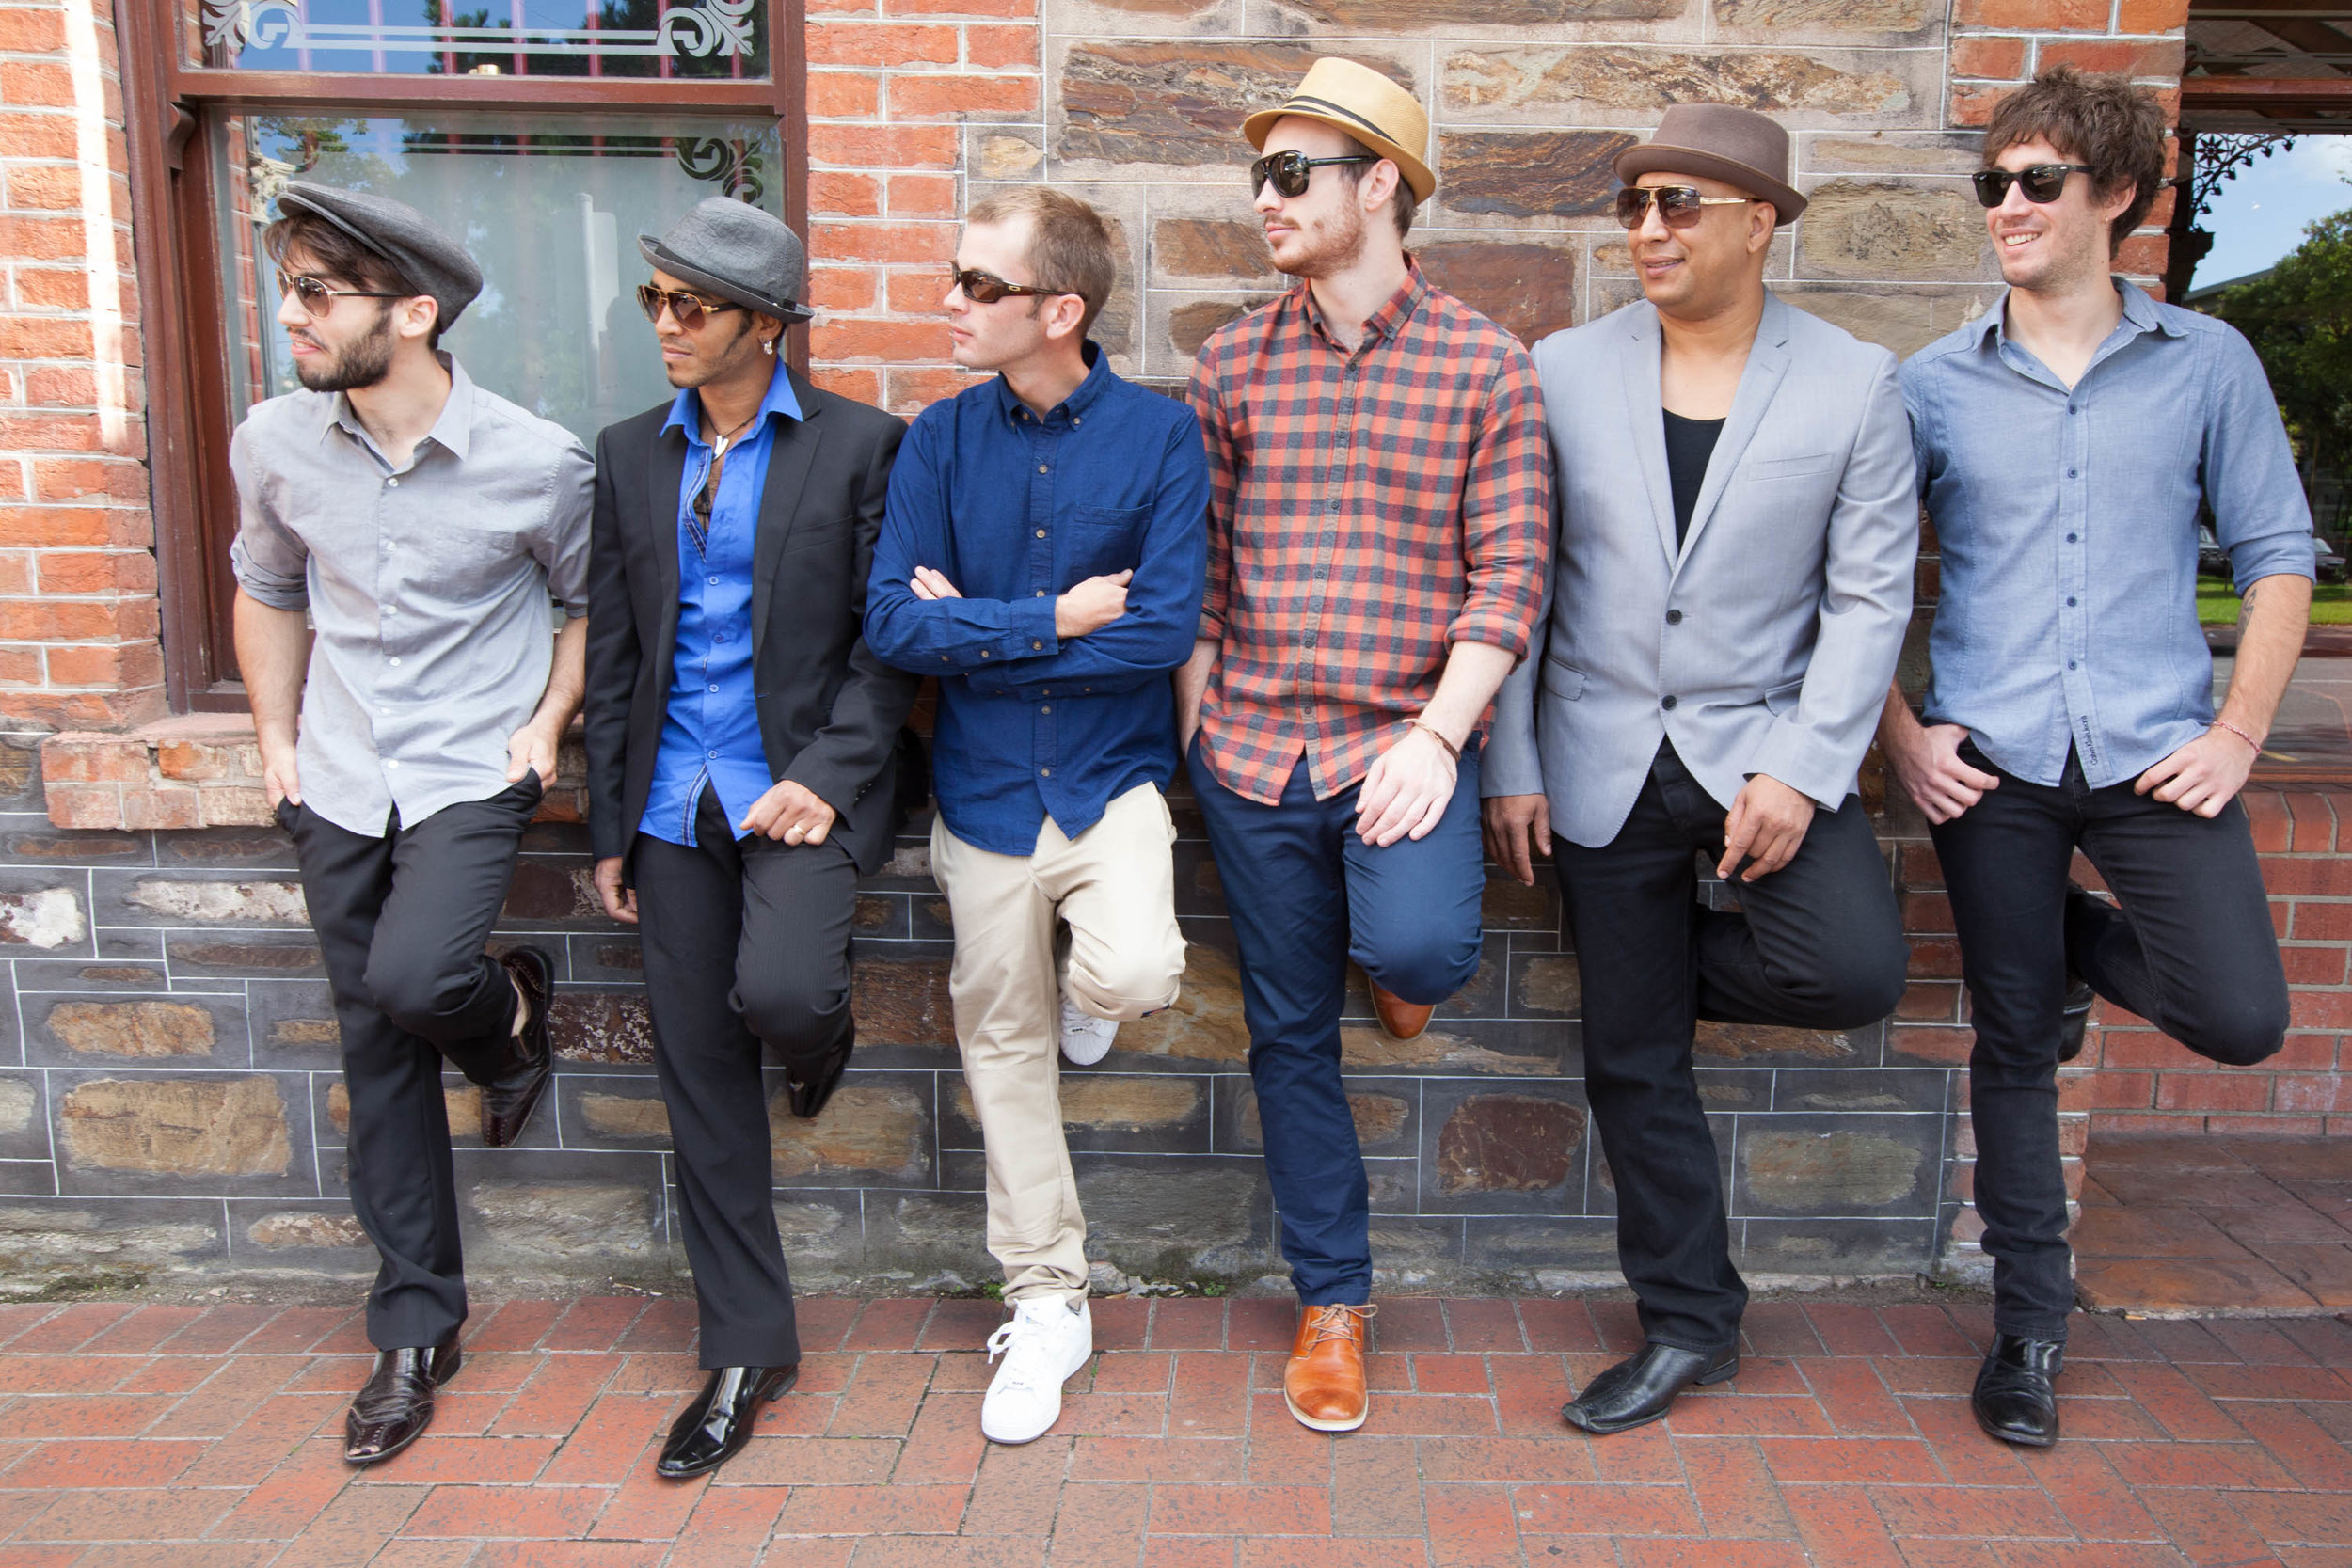 Soul Macumbia band looking good! Photo courtesy of Philip Johns